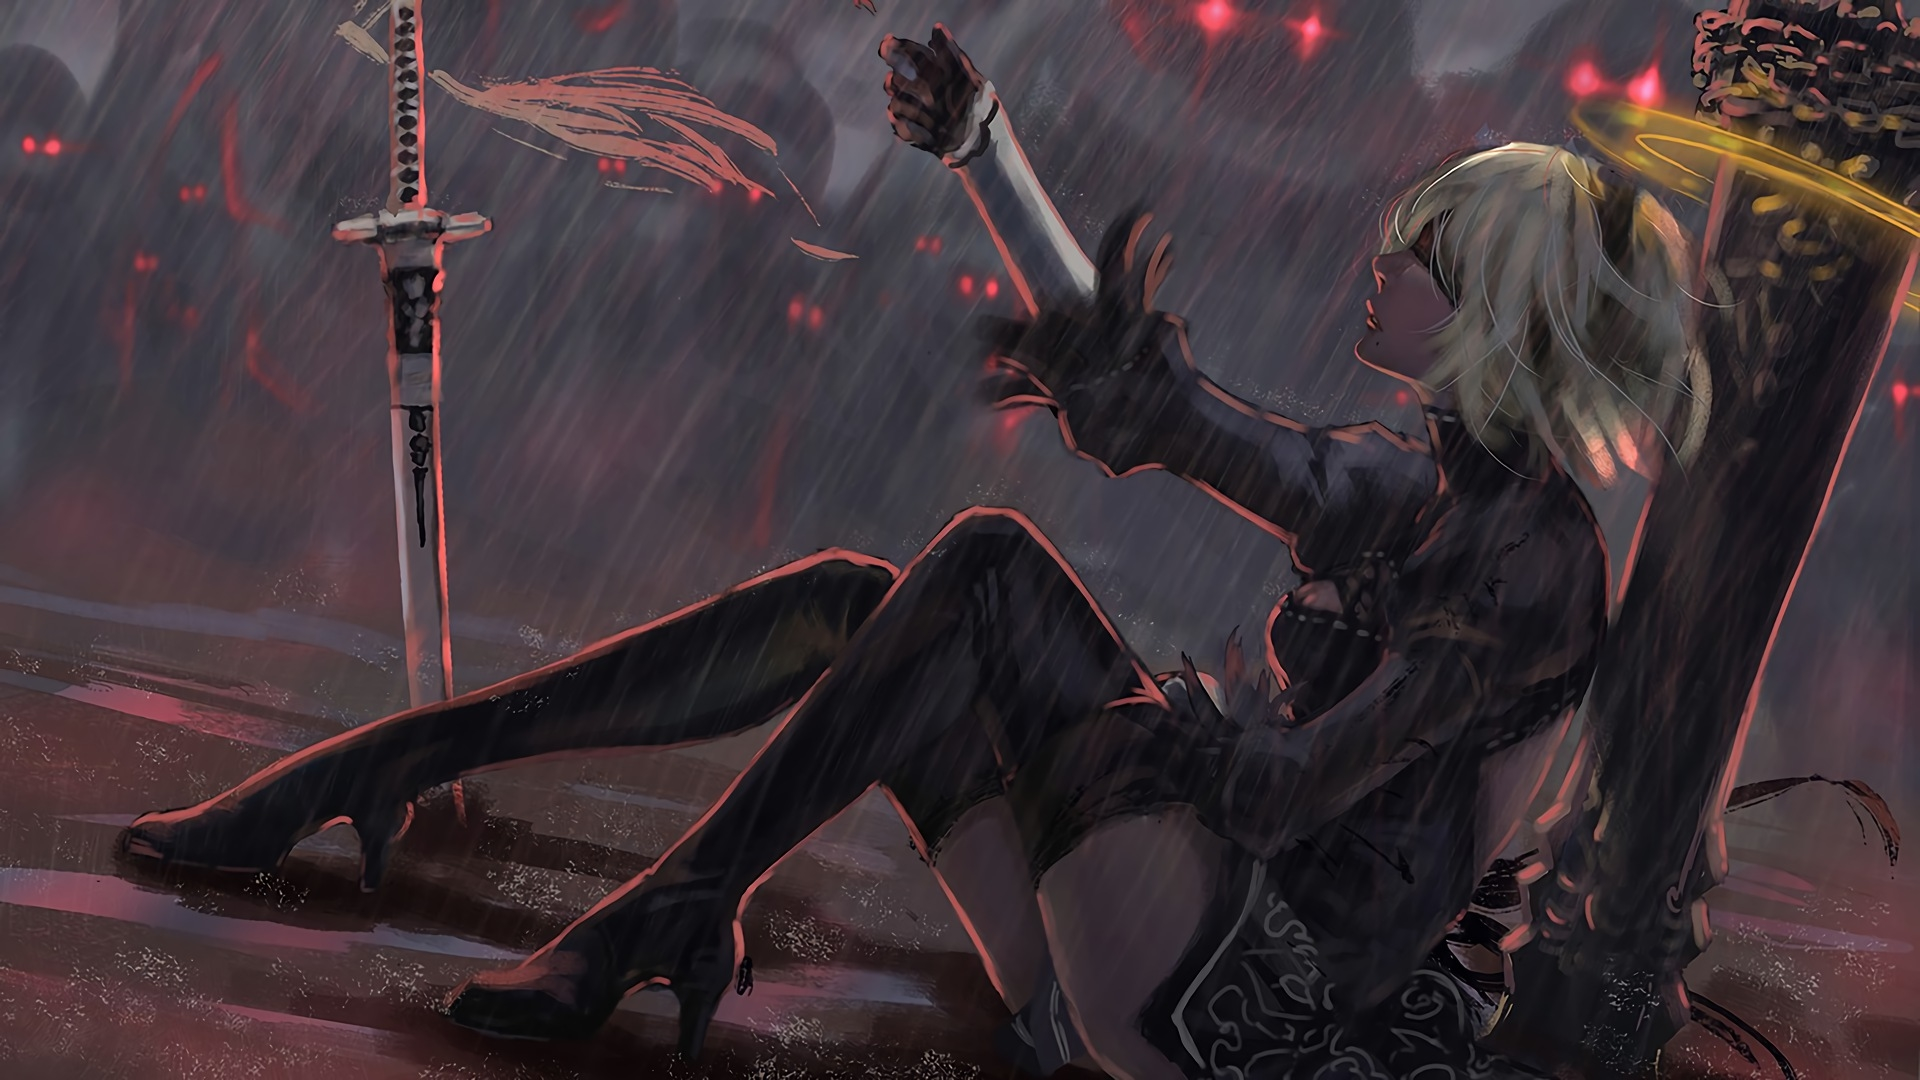 Nier Automata Fantasy Game Art Full Hd Wallpaper